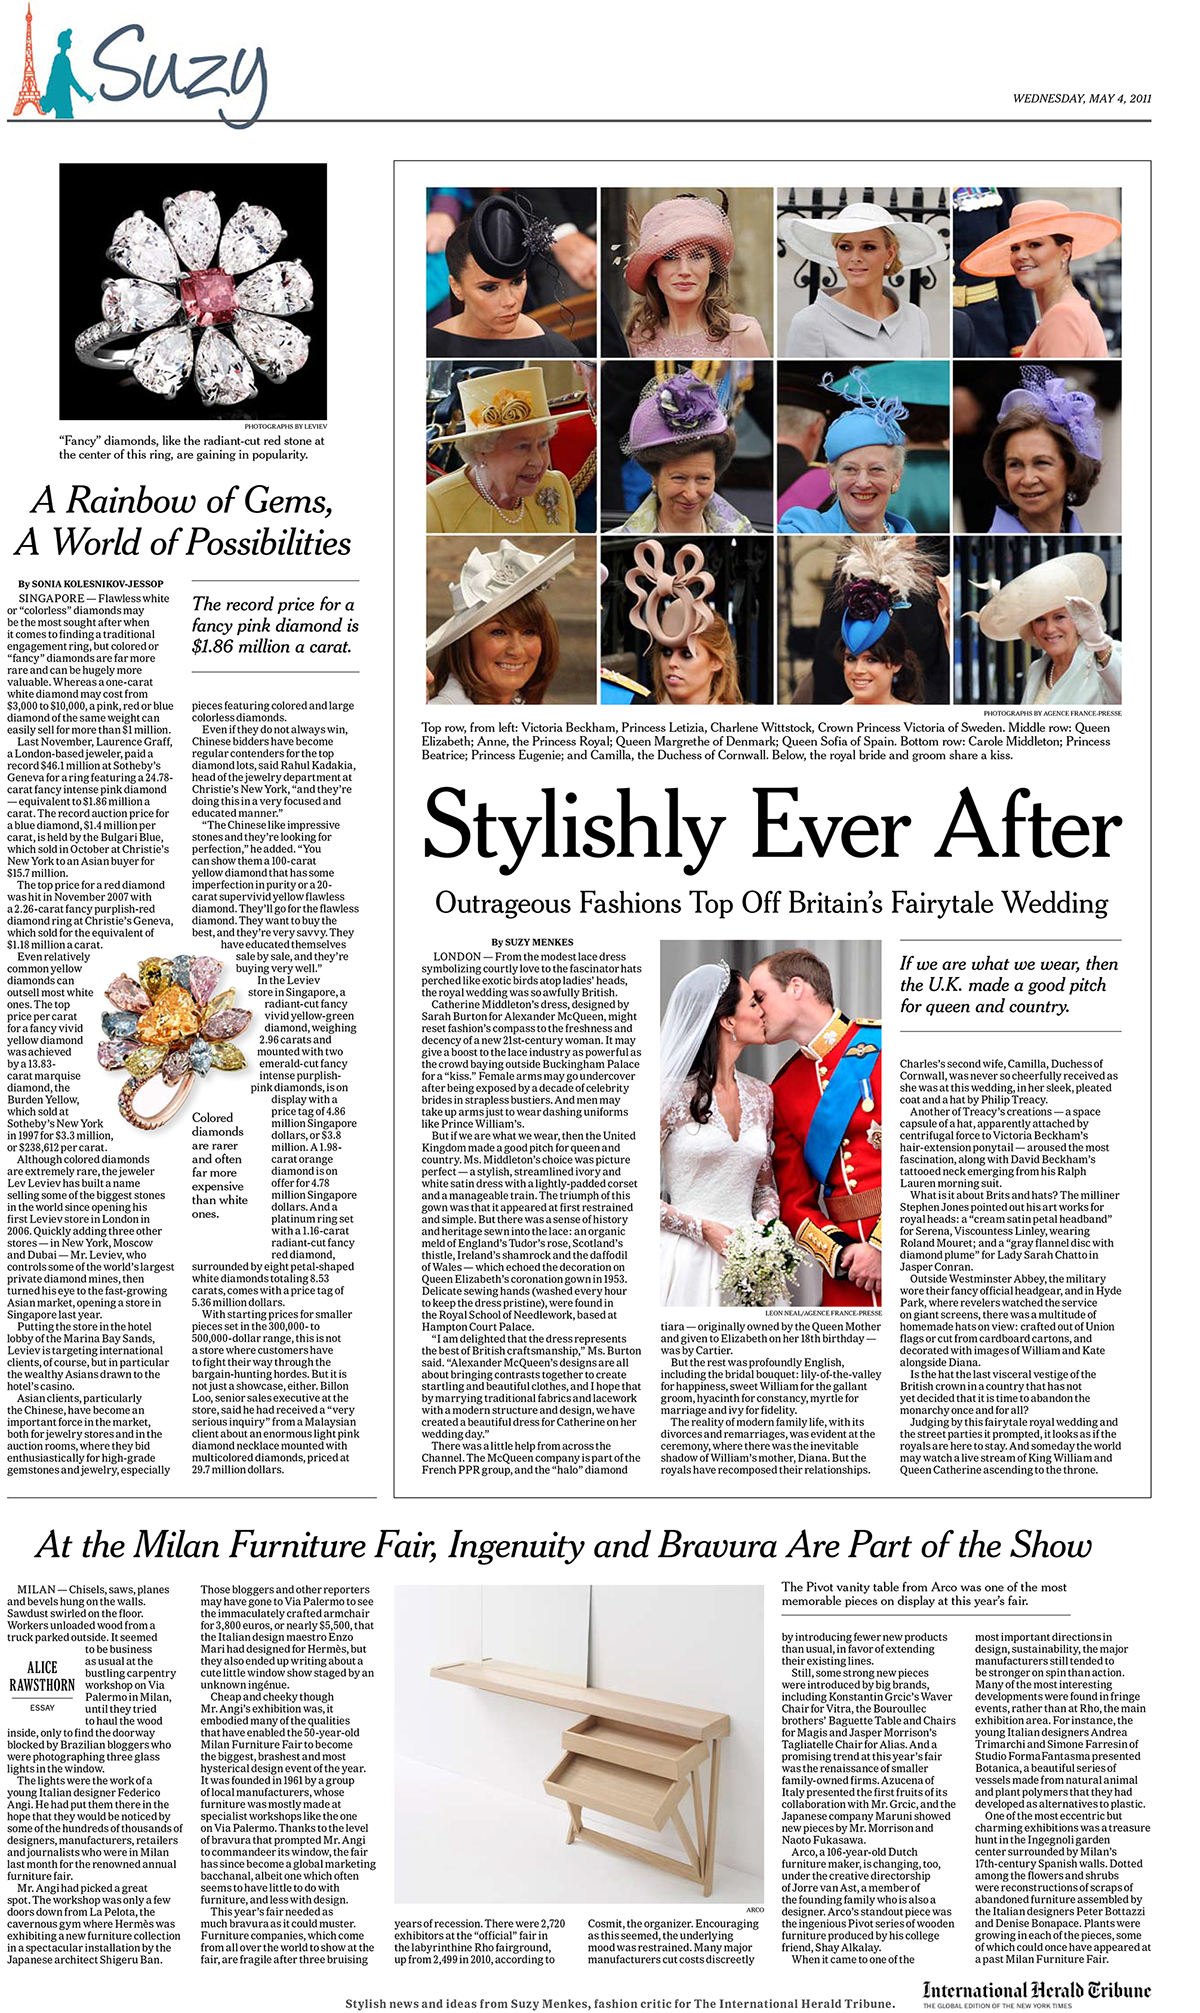 Suzy menkes nyt photo editor on behance from the weekly nyt branded suzy menkes broadsheet lead photo editor collaborated on design and layout izmirmasajfo